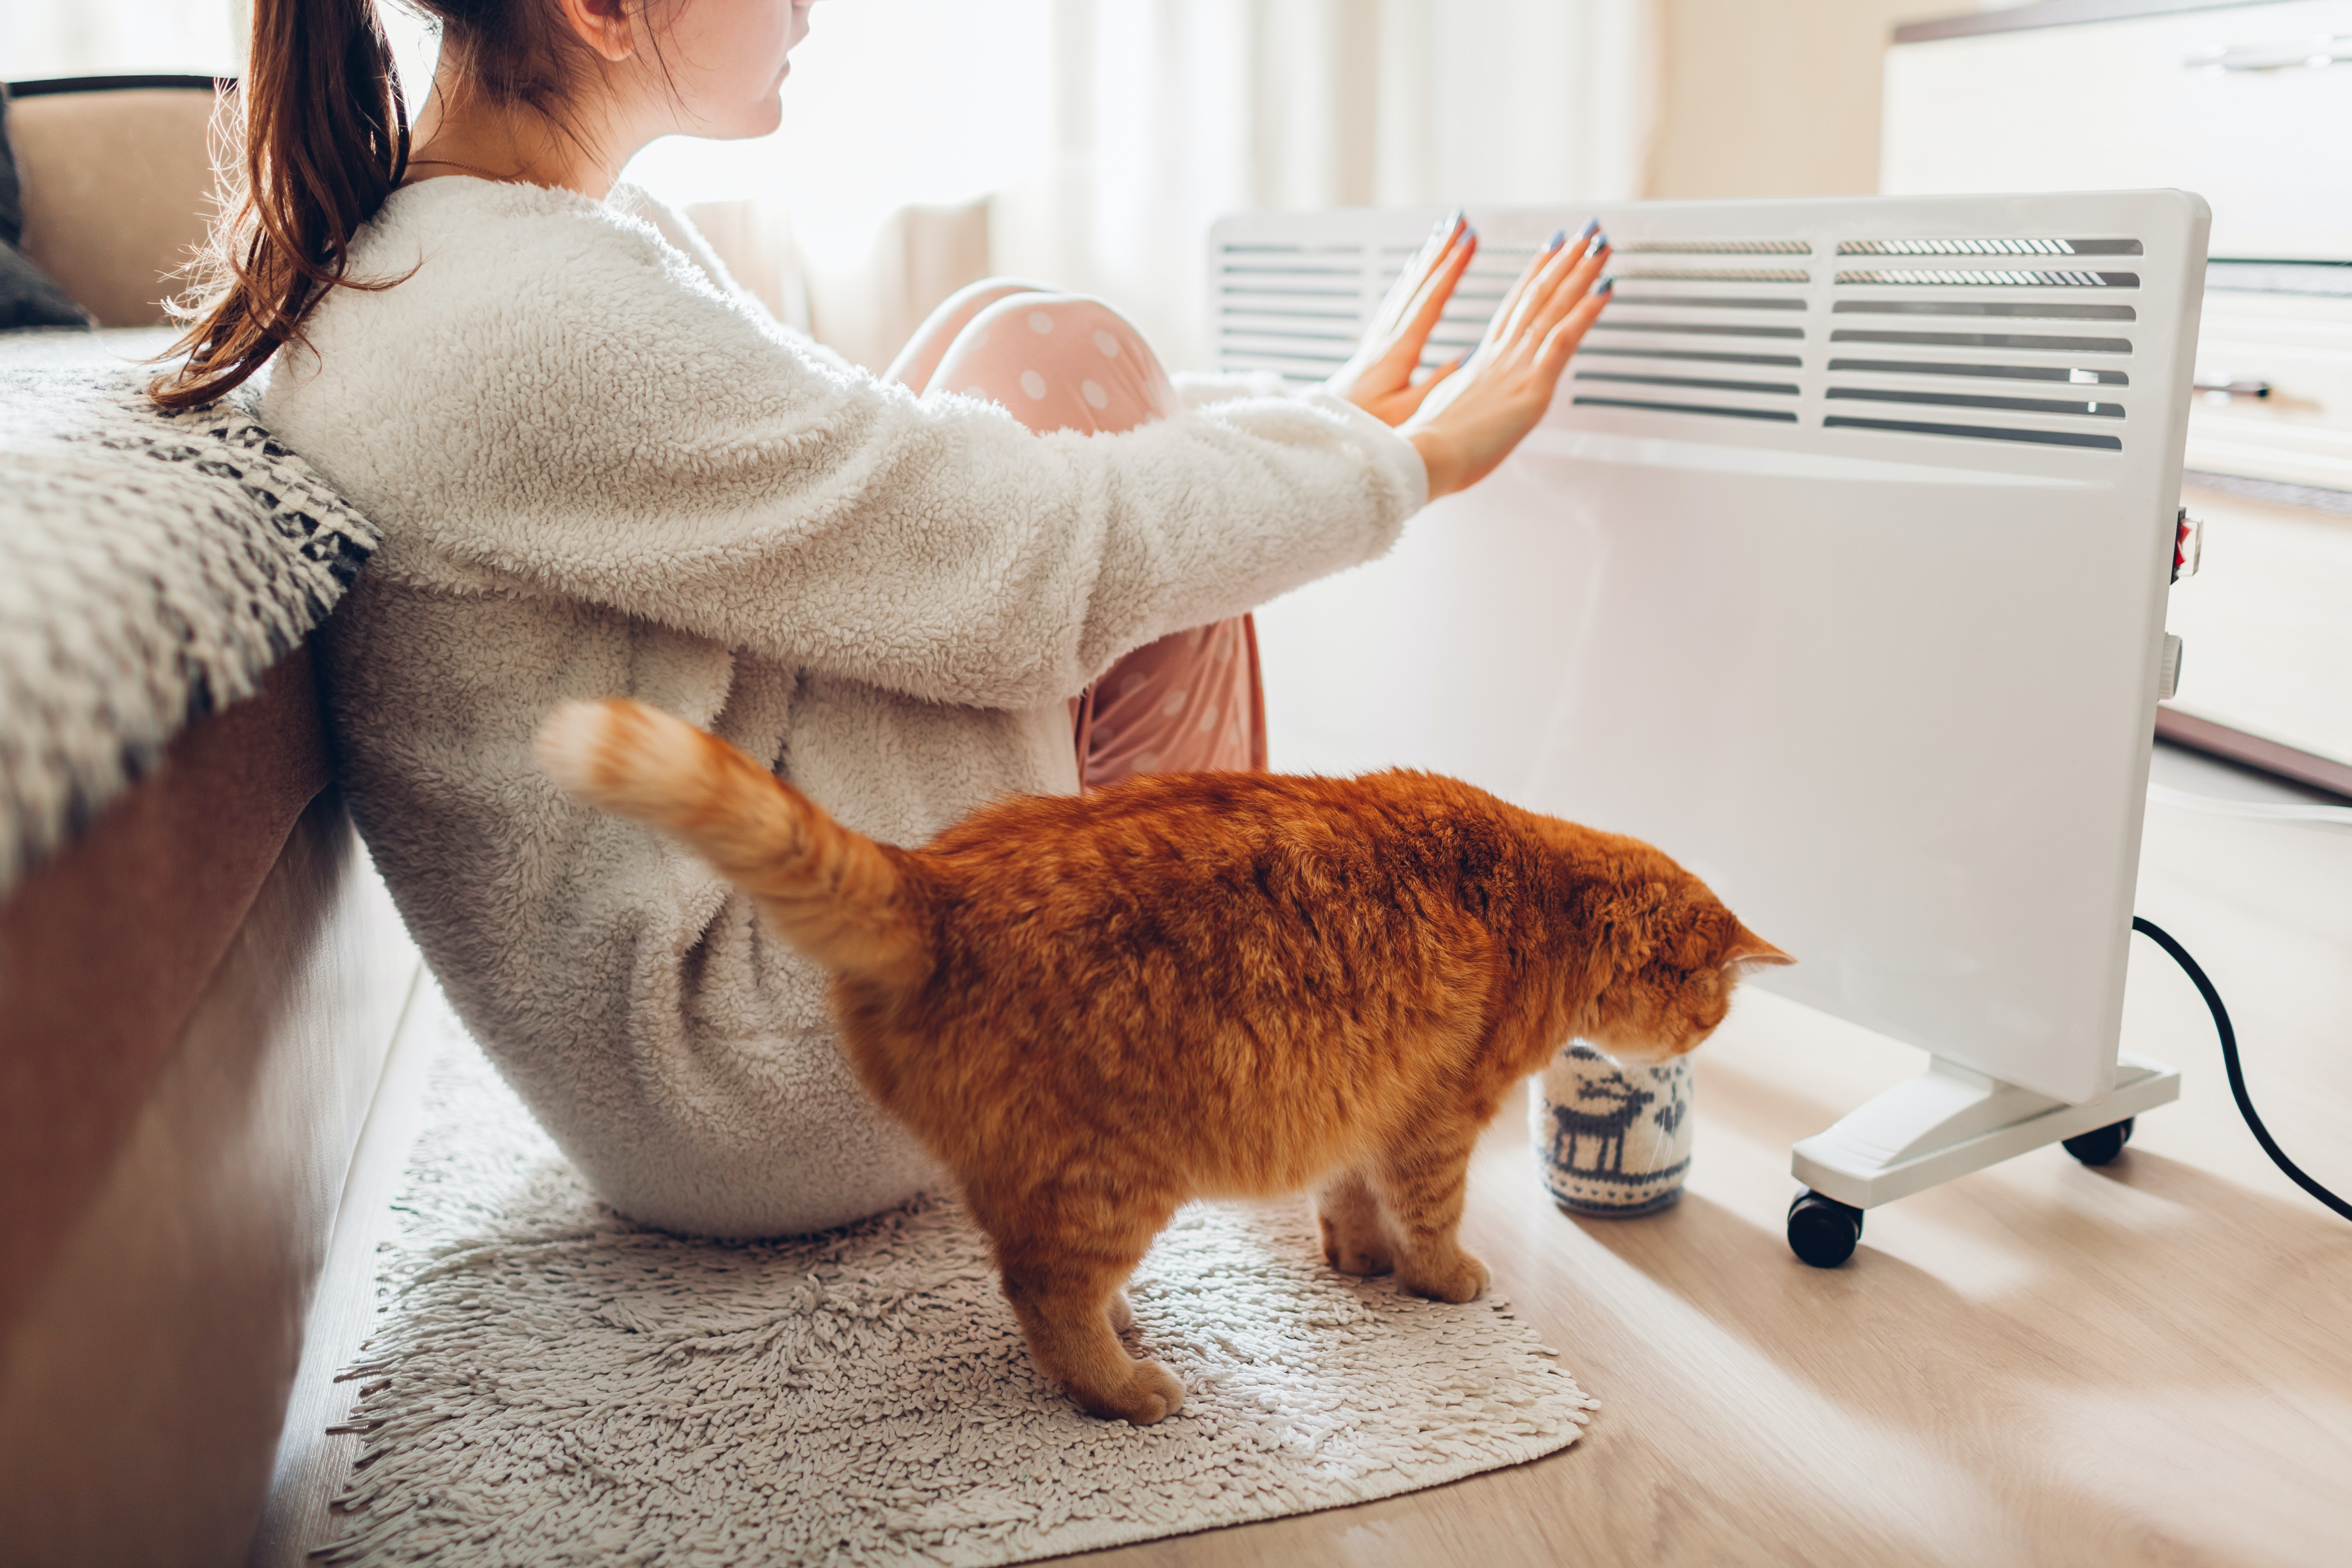 Woman and cat warming themselves by space heater